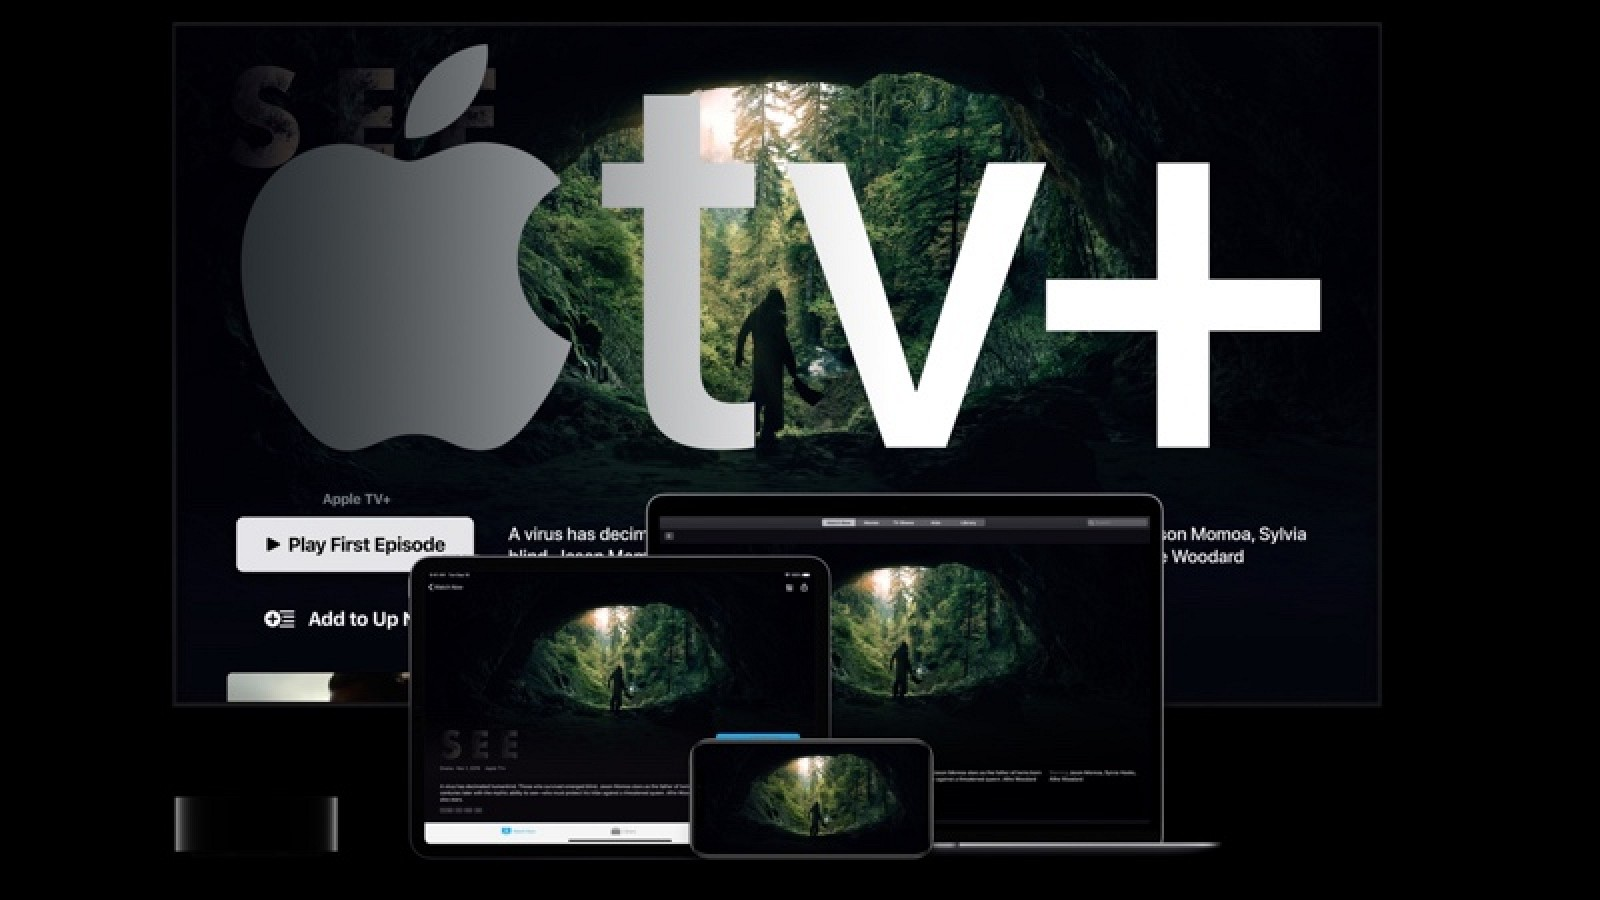 Hands-On With the New Apple TV+ Streaming Service